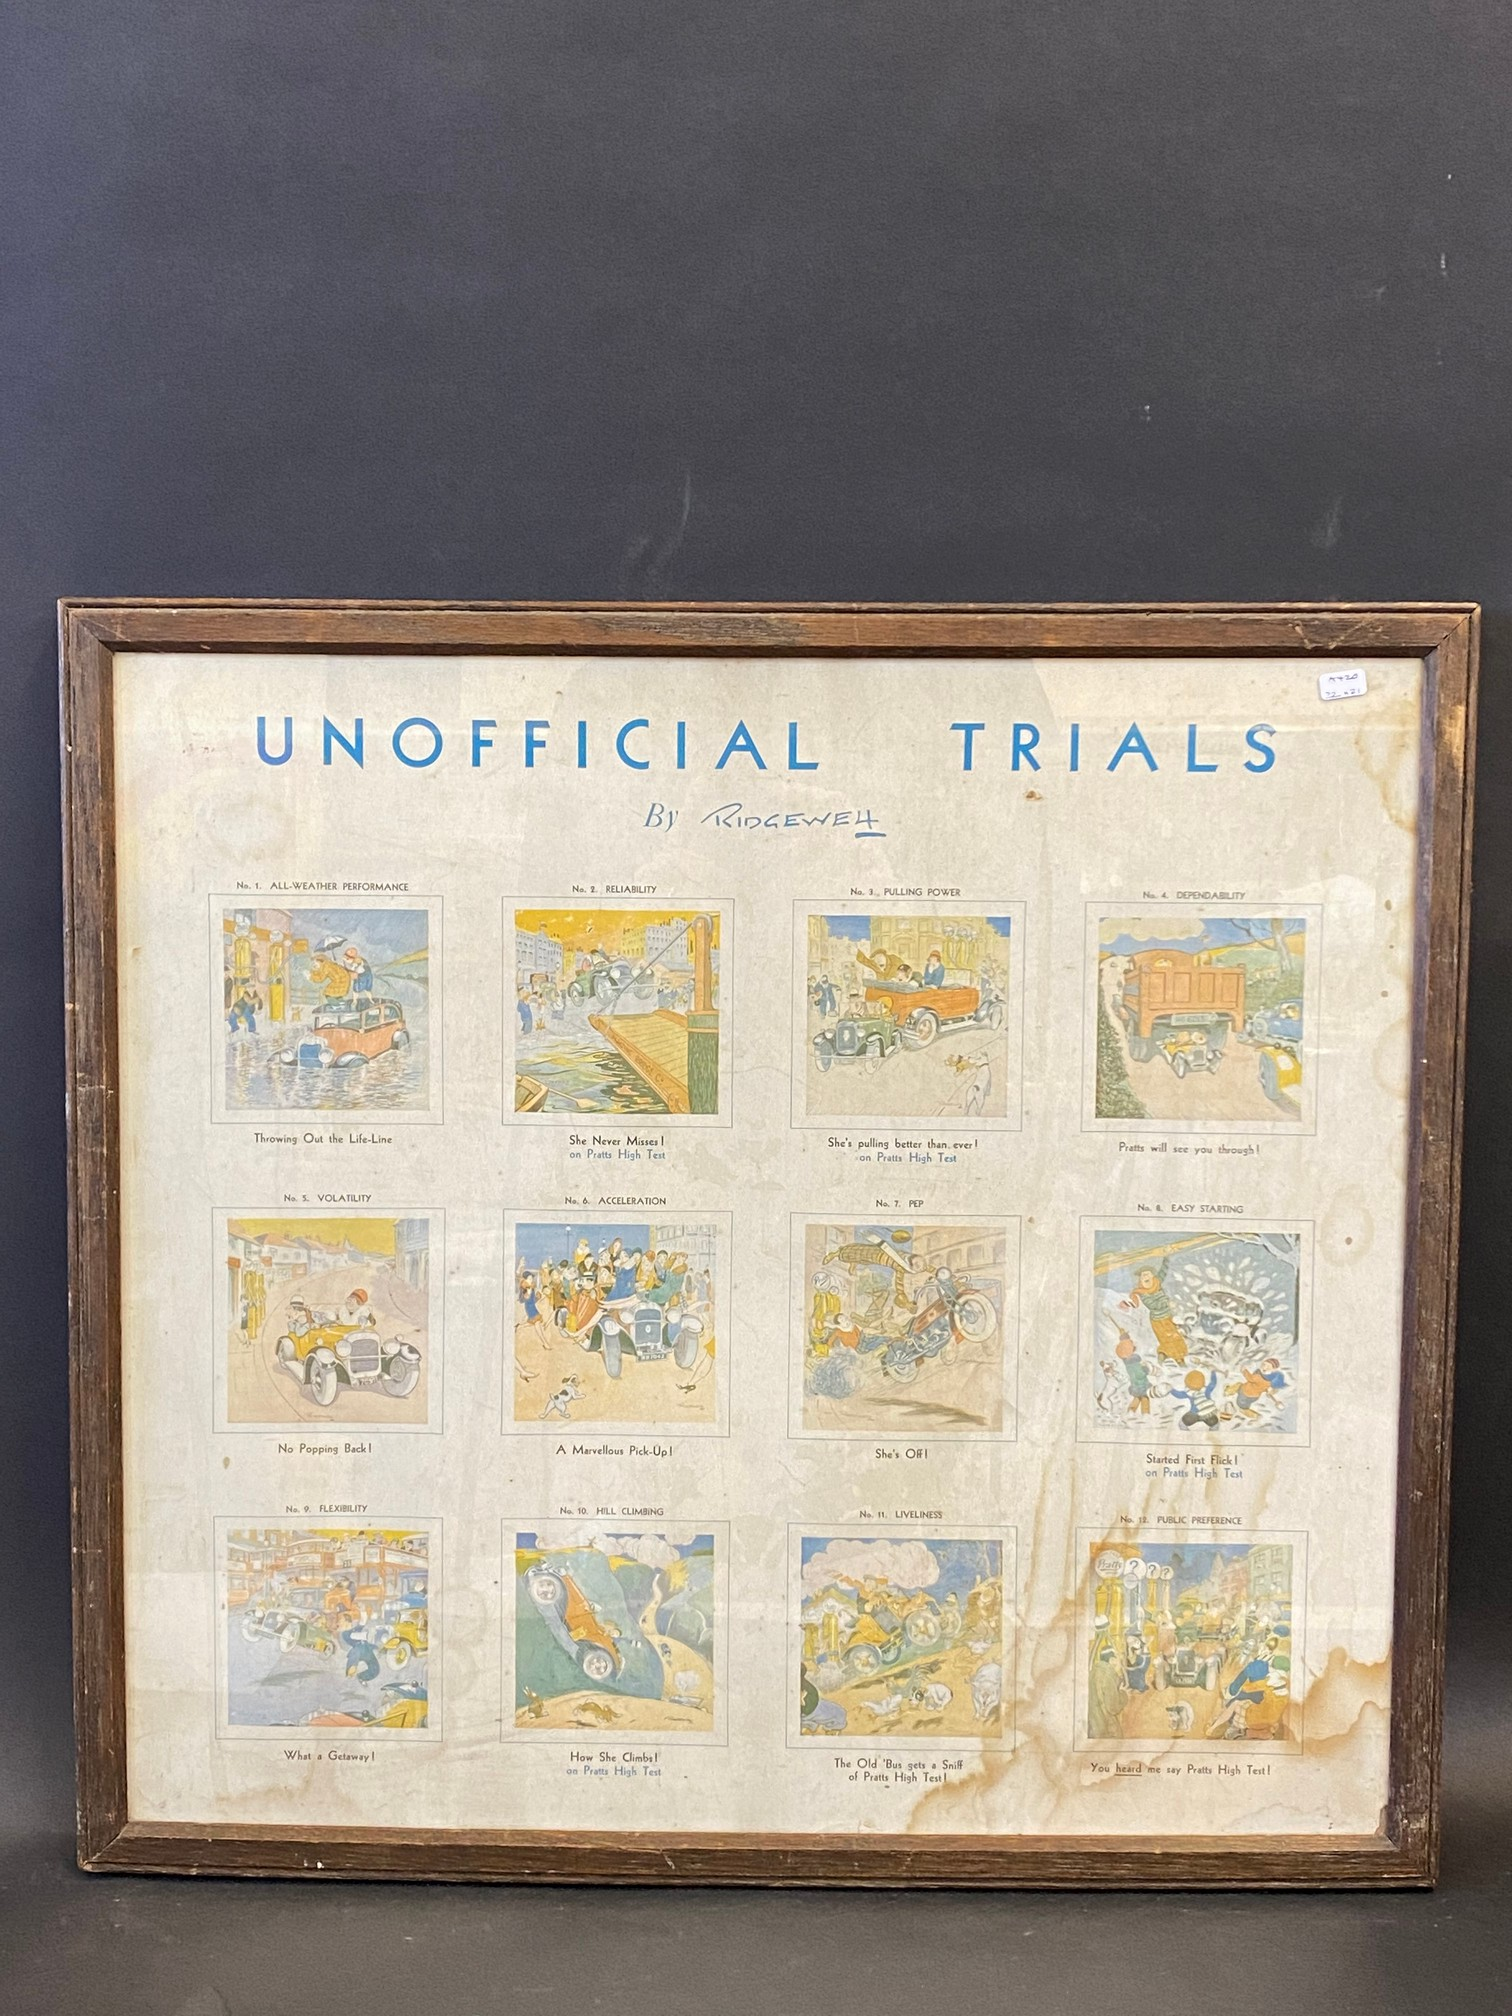 """A framed and glazed Pratts pictorial advertisement titled 'Unofficial Trials', 22 x 21""""."""